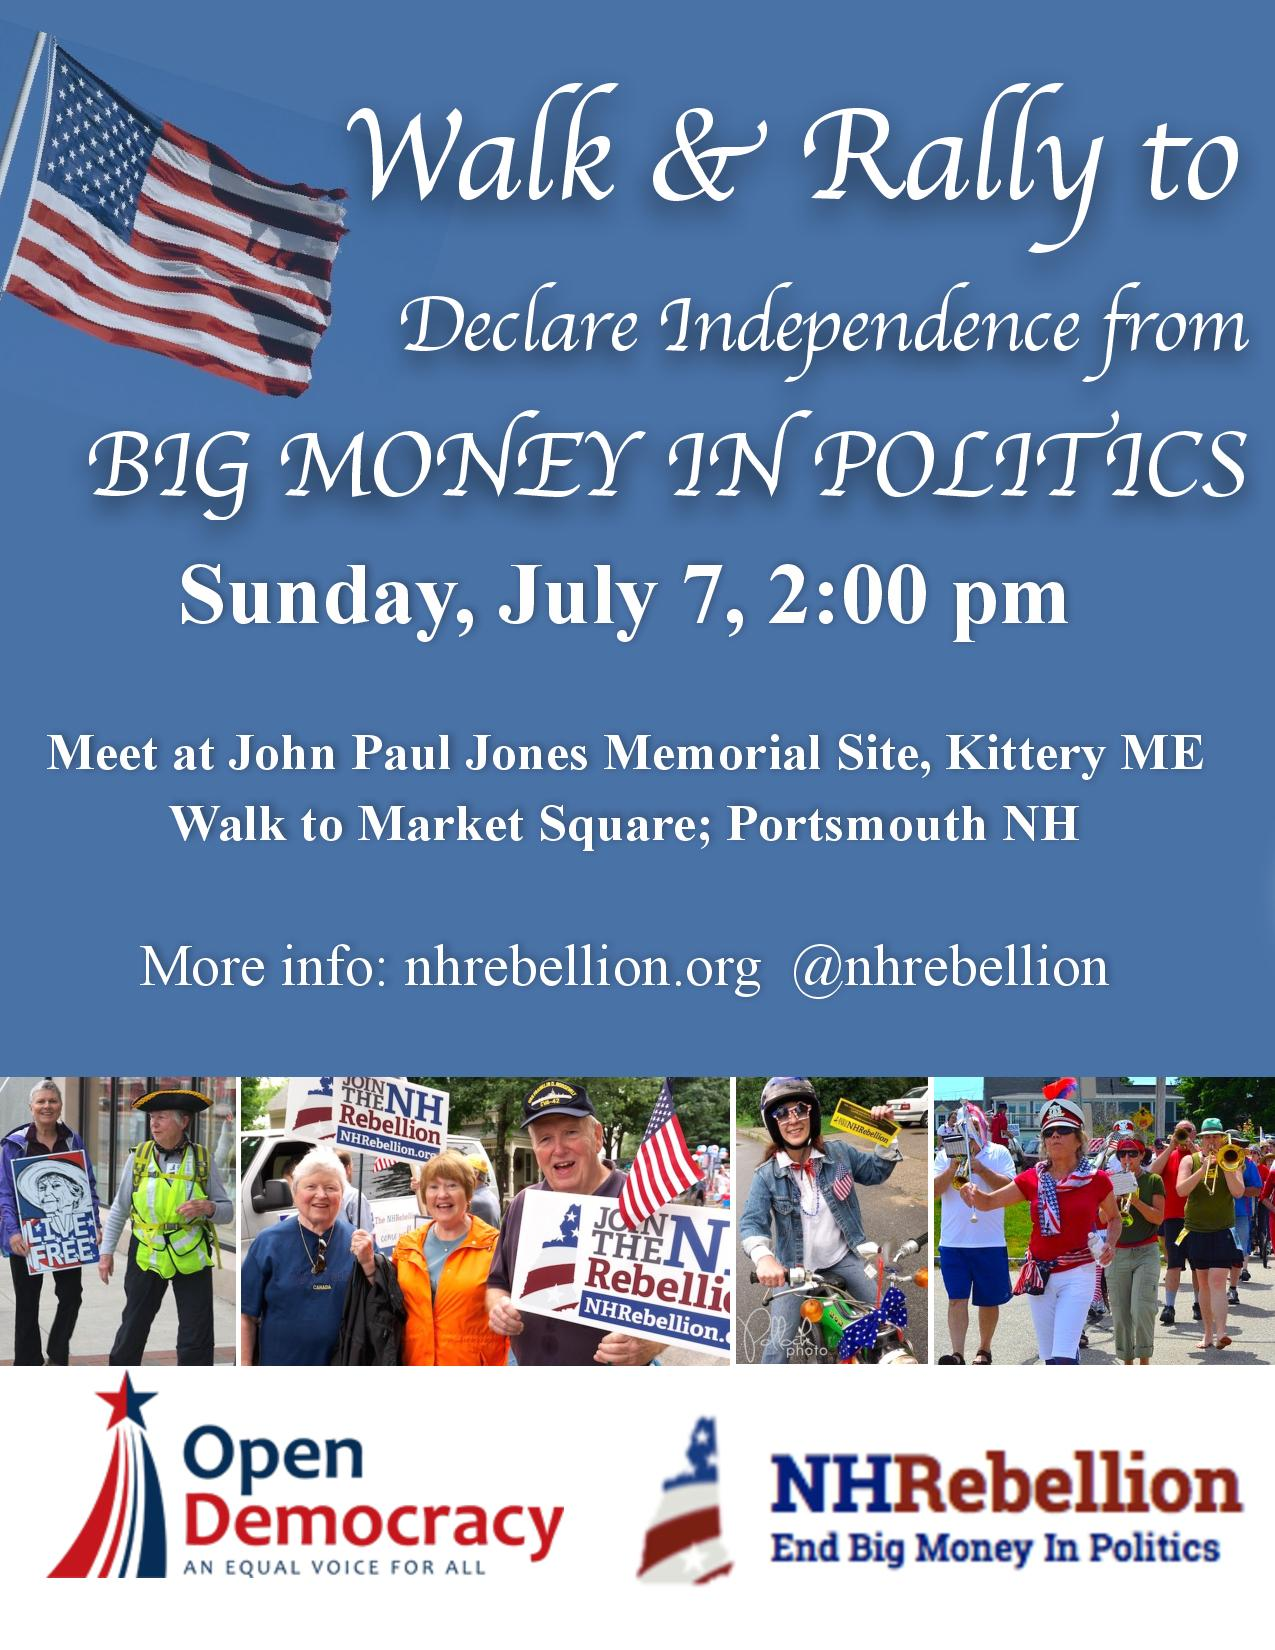 Walk for Independence from Big Money Politics